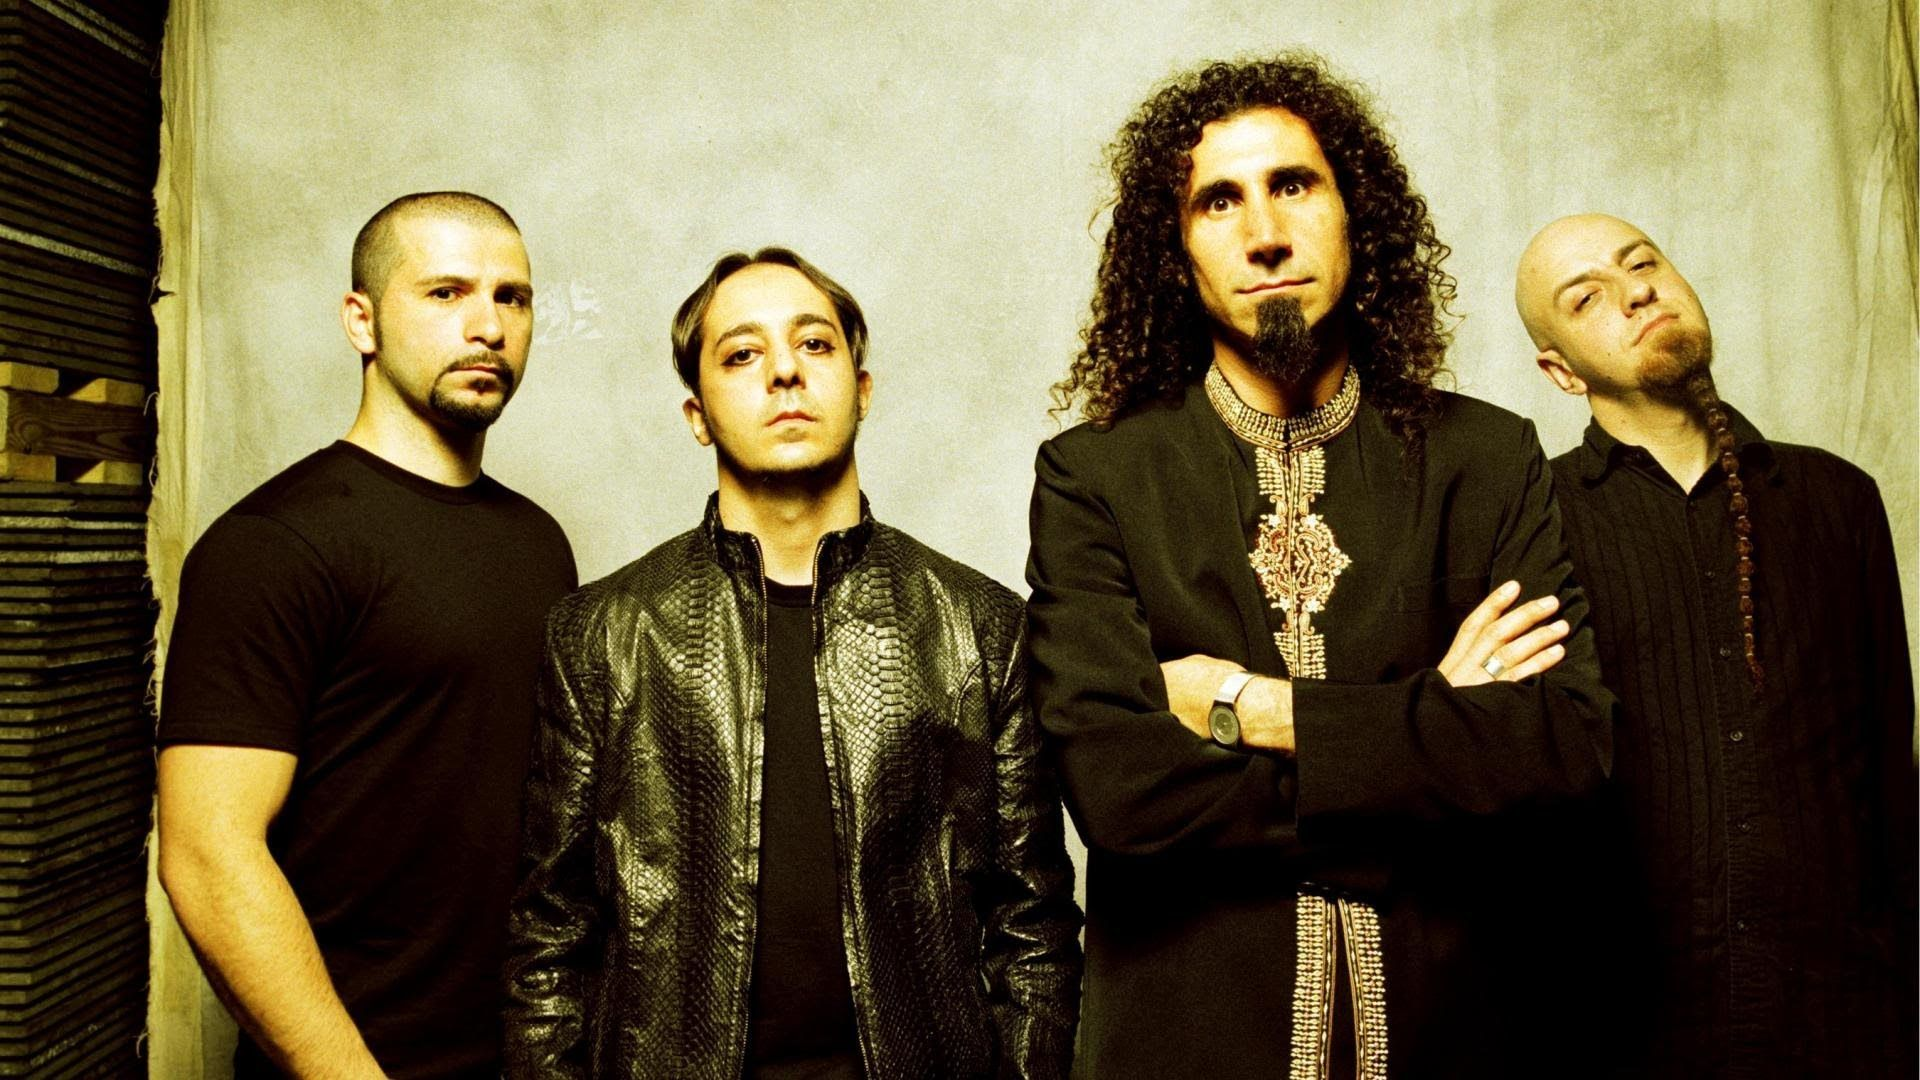 System Of A Down All Songs 320kbps Hd With Images System Of